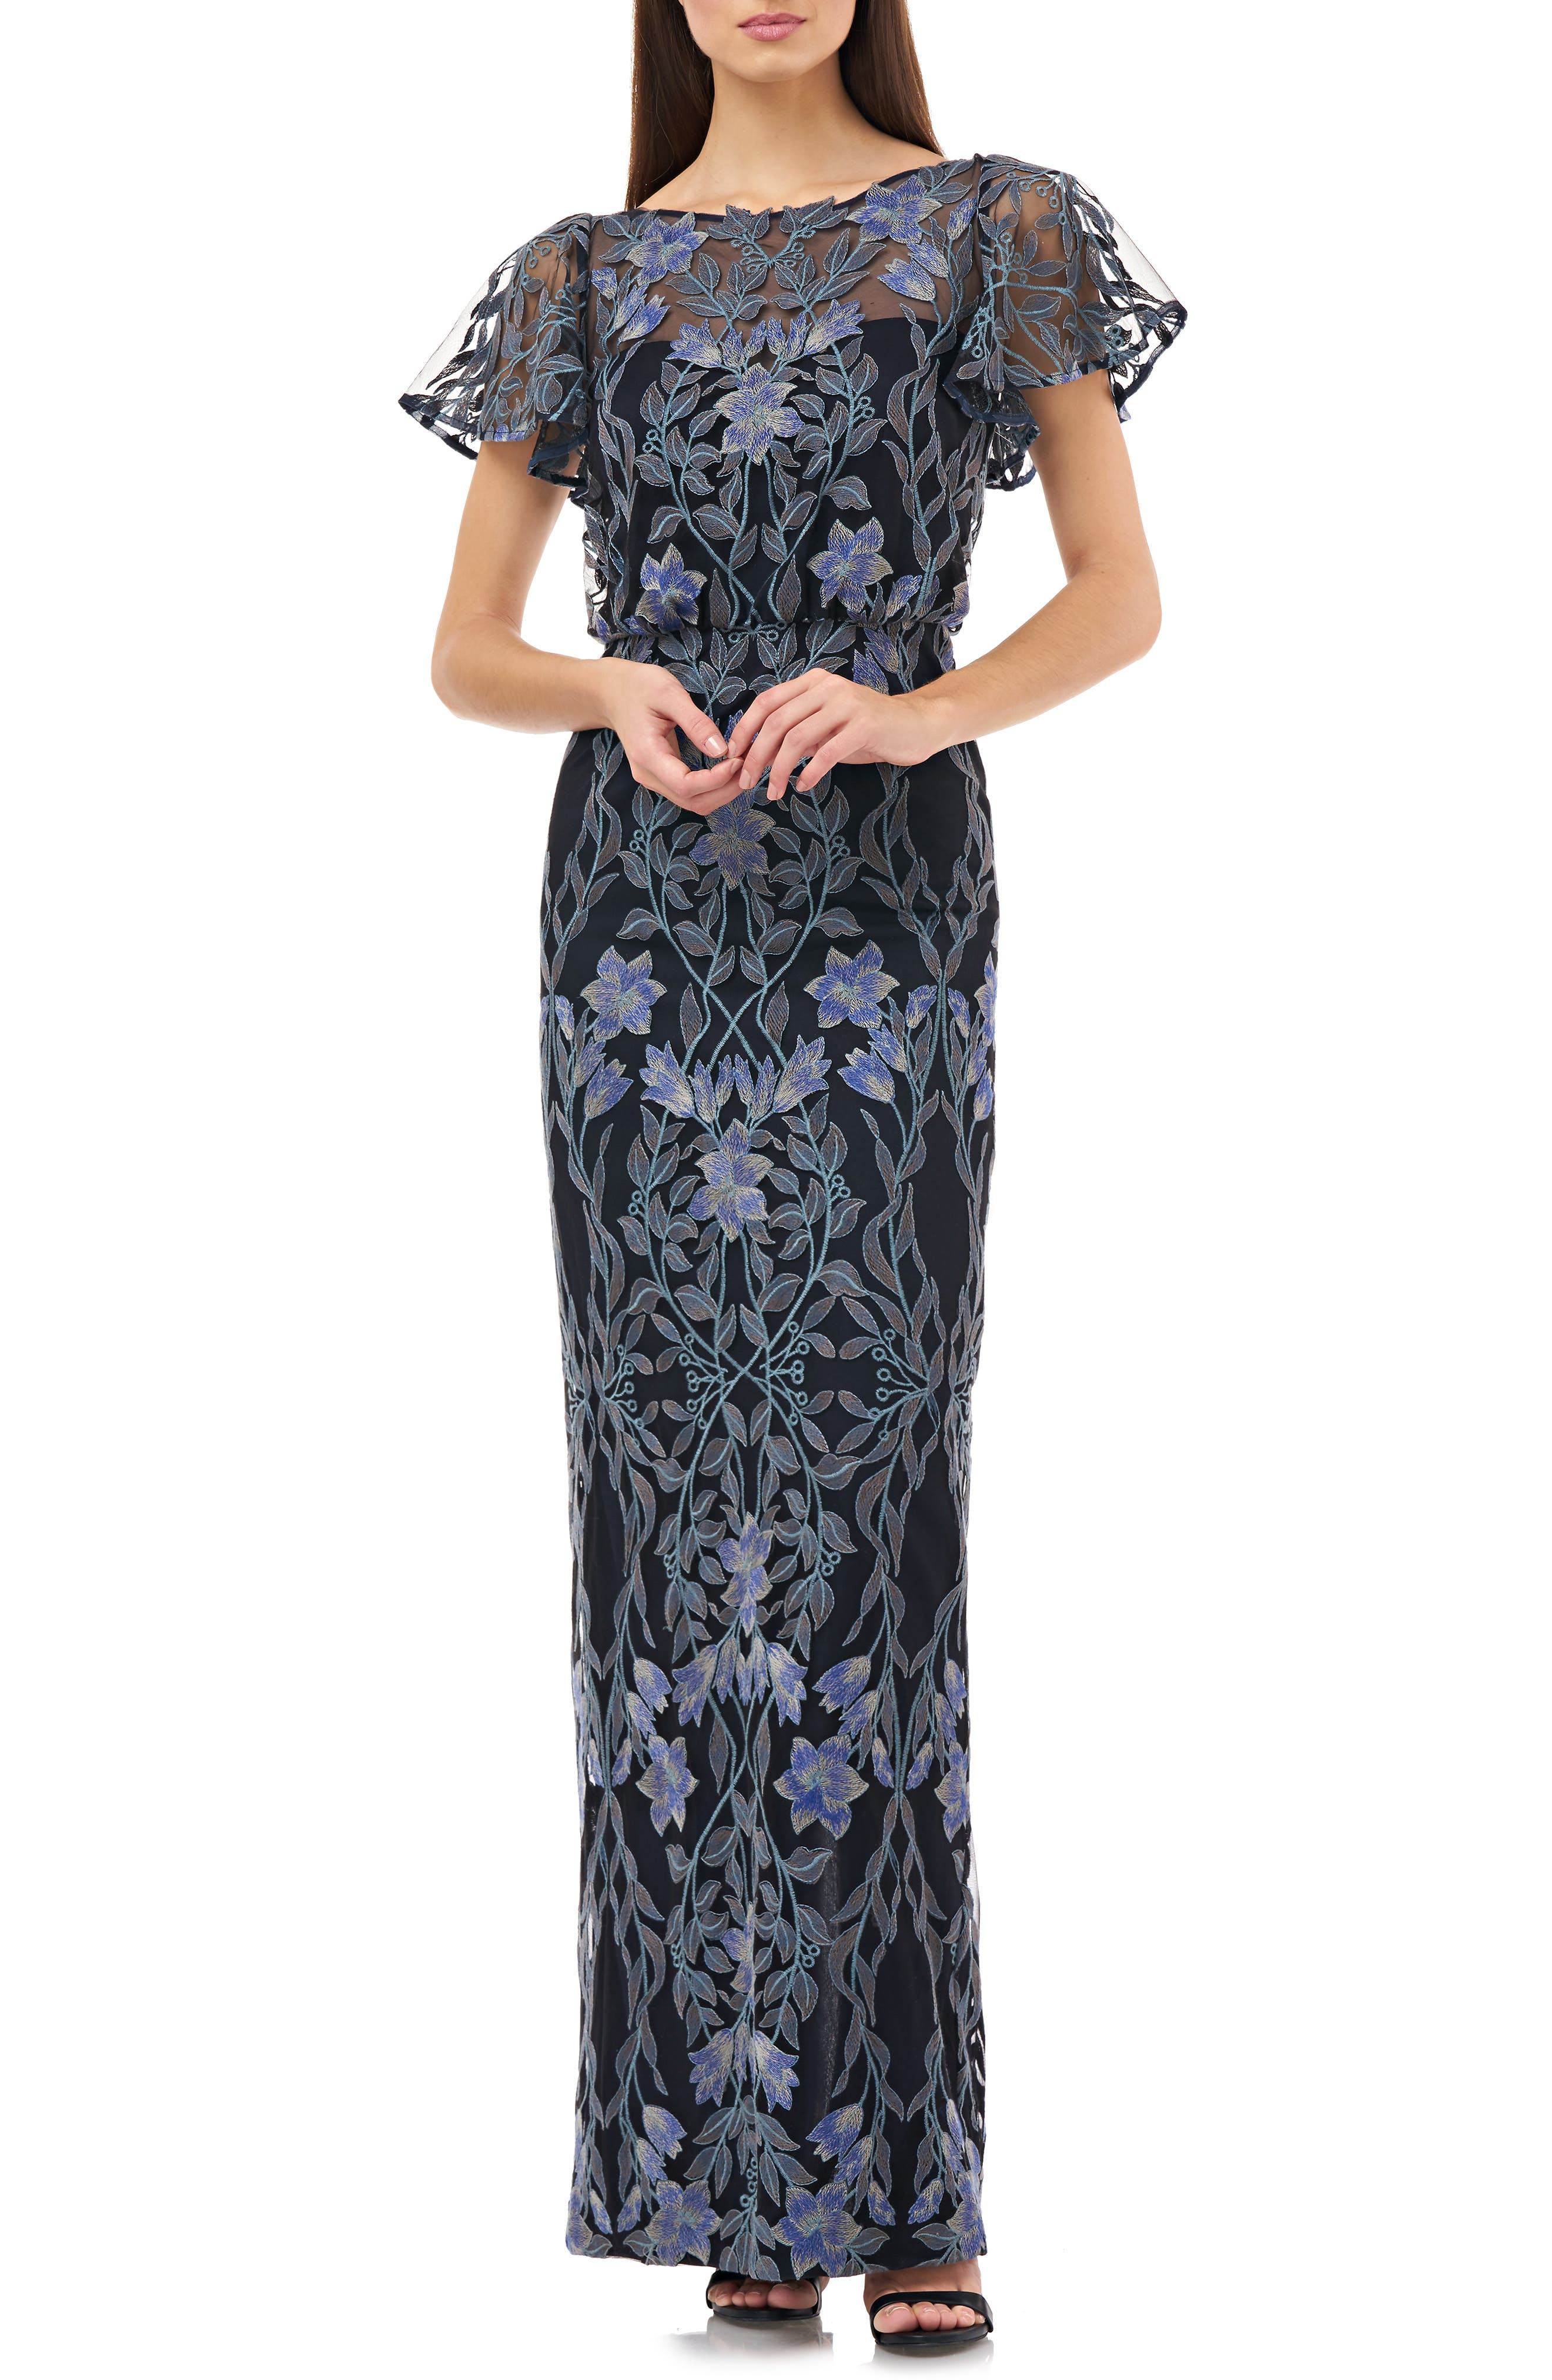 1930s Evening Dresses | Old Hollywood Dress Womens Js Collections Illusion Embroidered Blouson Evening Gown $328.00 AT vintagedancer.com